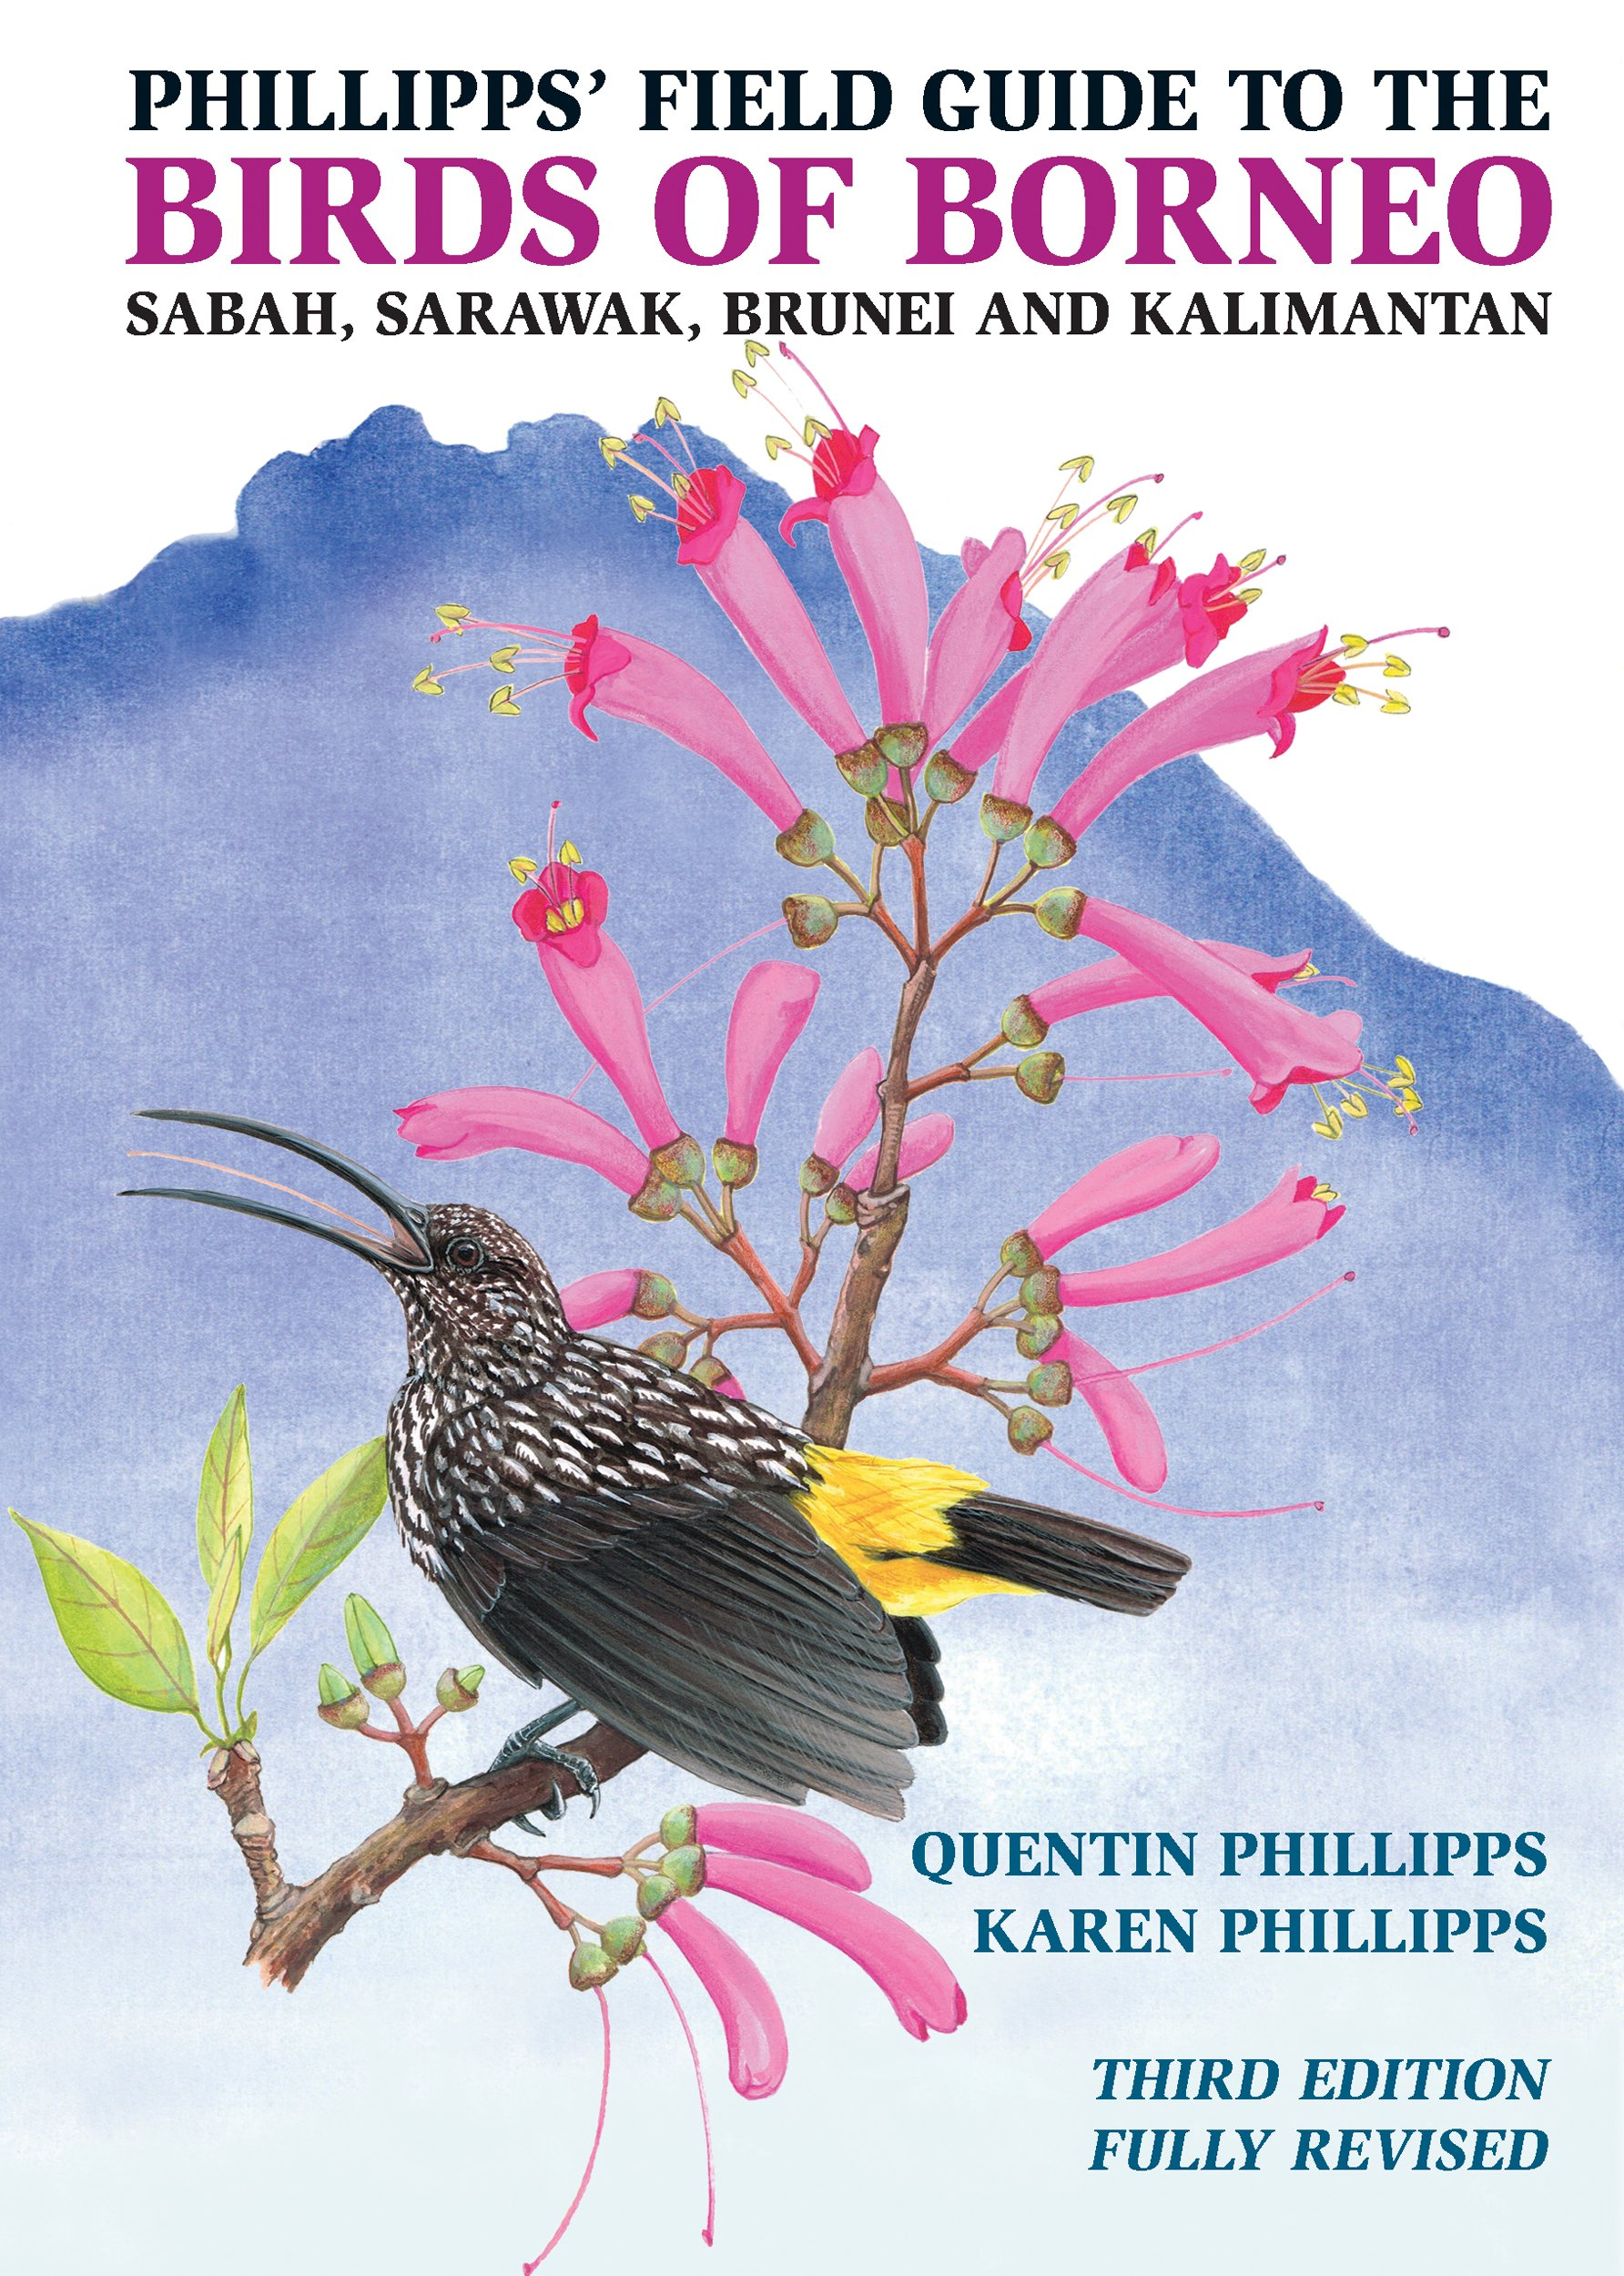 Download Phillipps' Field Guide to the Birds of Borneo: Sabah, Sarawak, Brunei, and Kalimantan - Fully Revised Third Edition (Princeton Field Guides) ebook